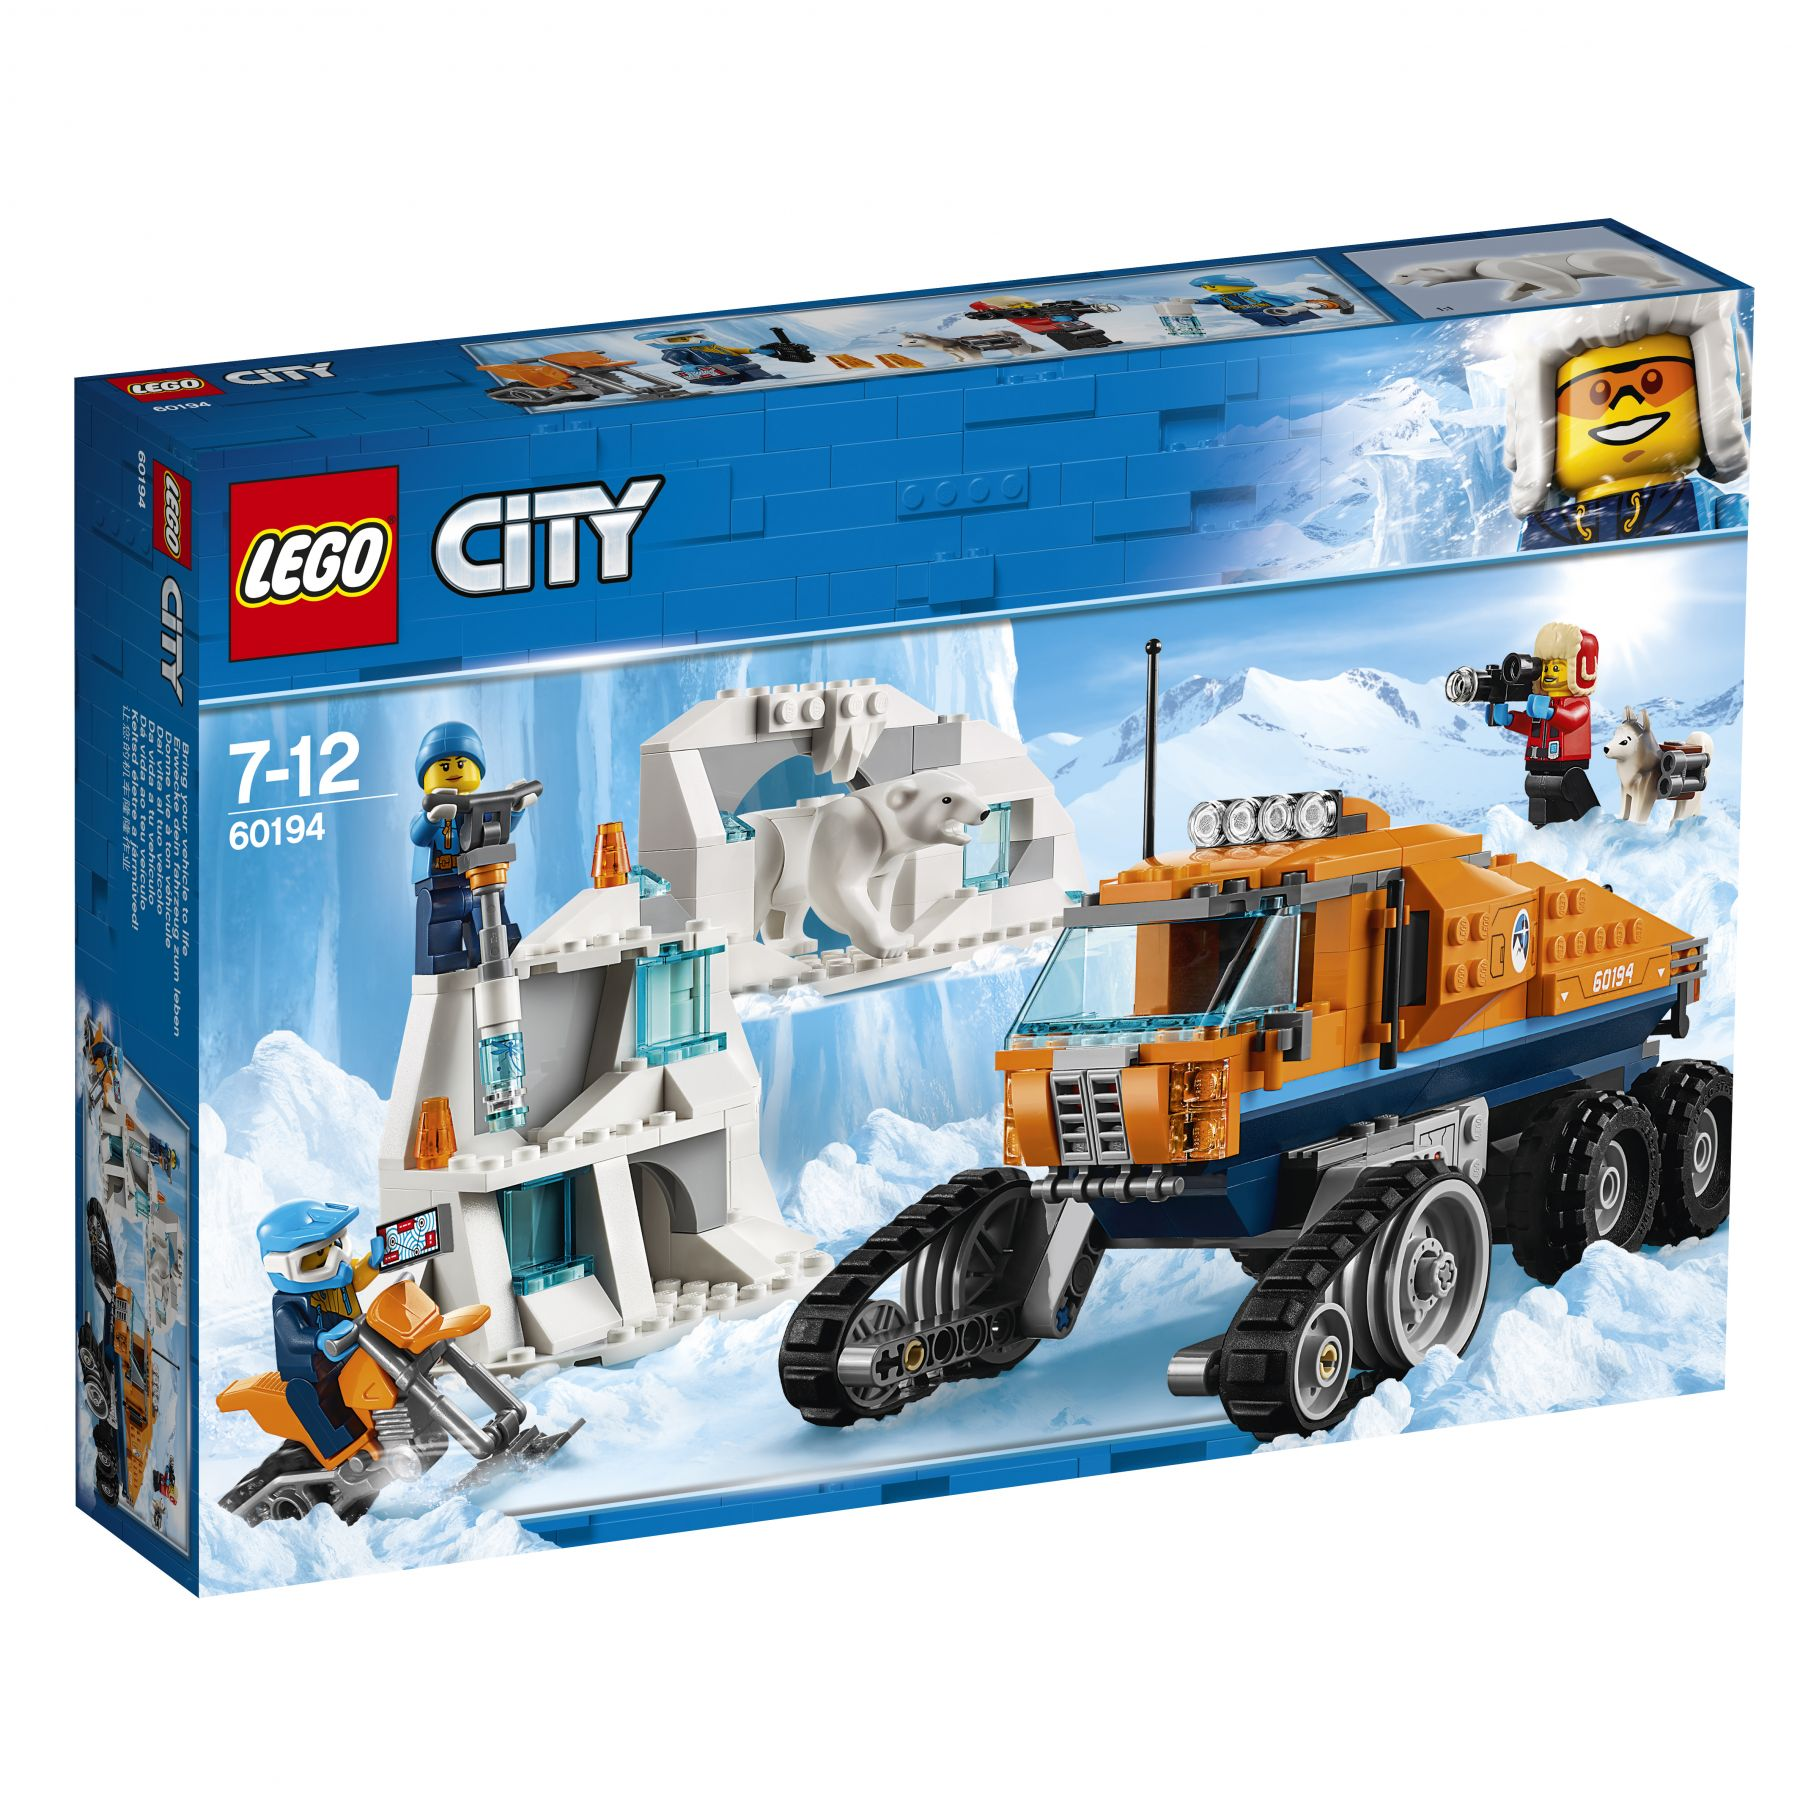 LEGO City 60194 Arktis-Erkundungstruck 60194_LEGO_City_Arktis_Erkundungstruck_Packung.jpg